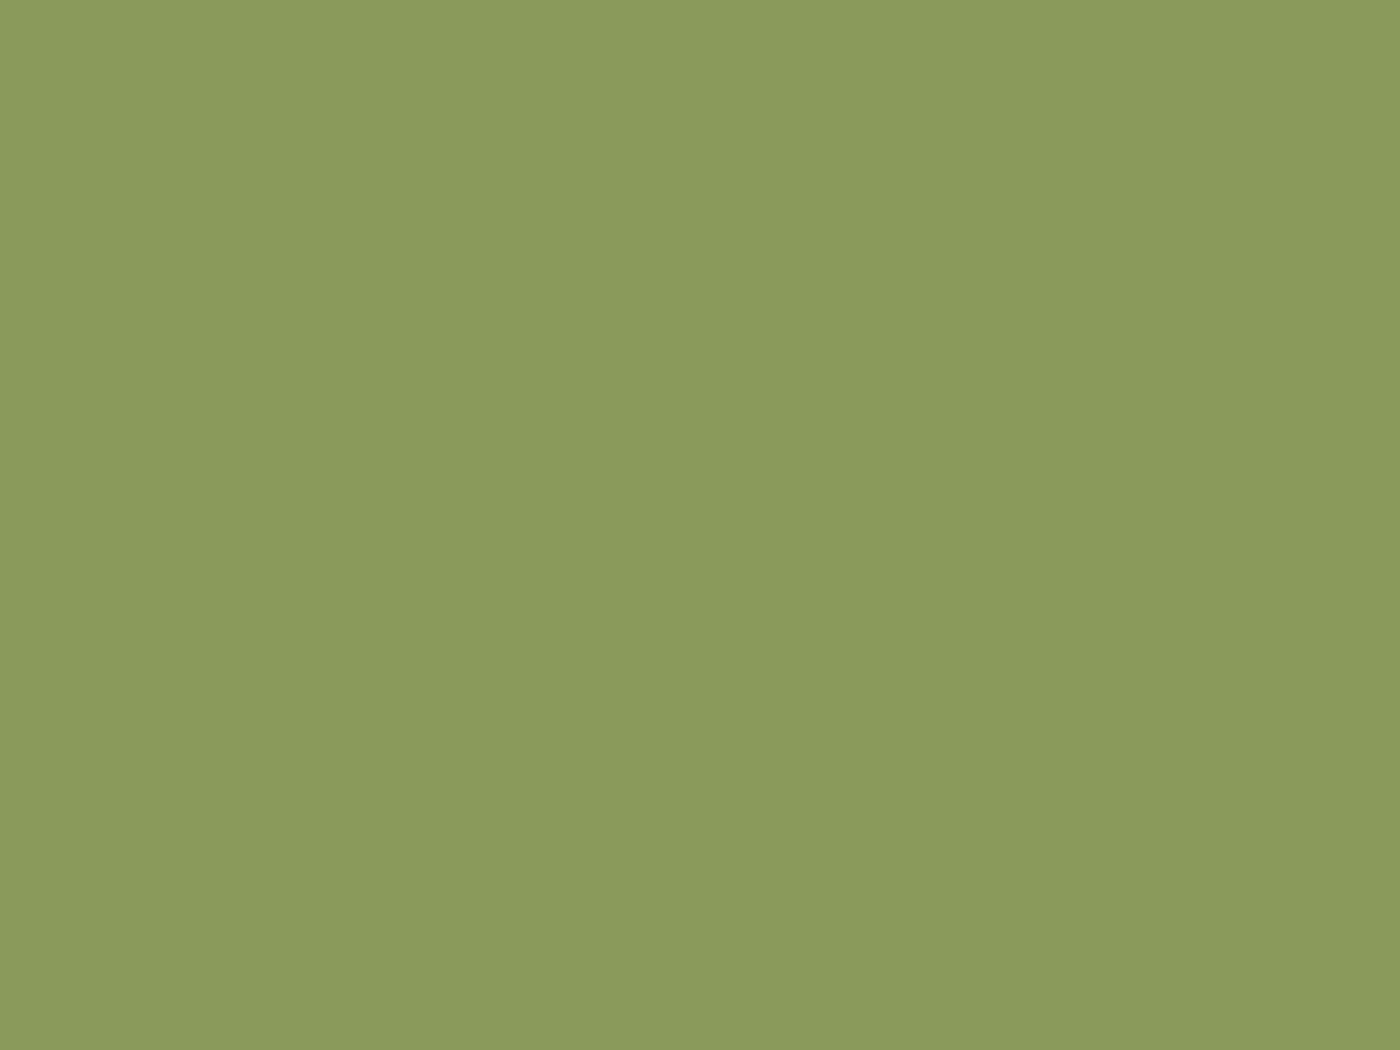 1400x1050 Moss Green Solid Color Background